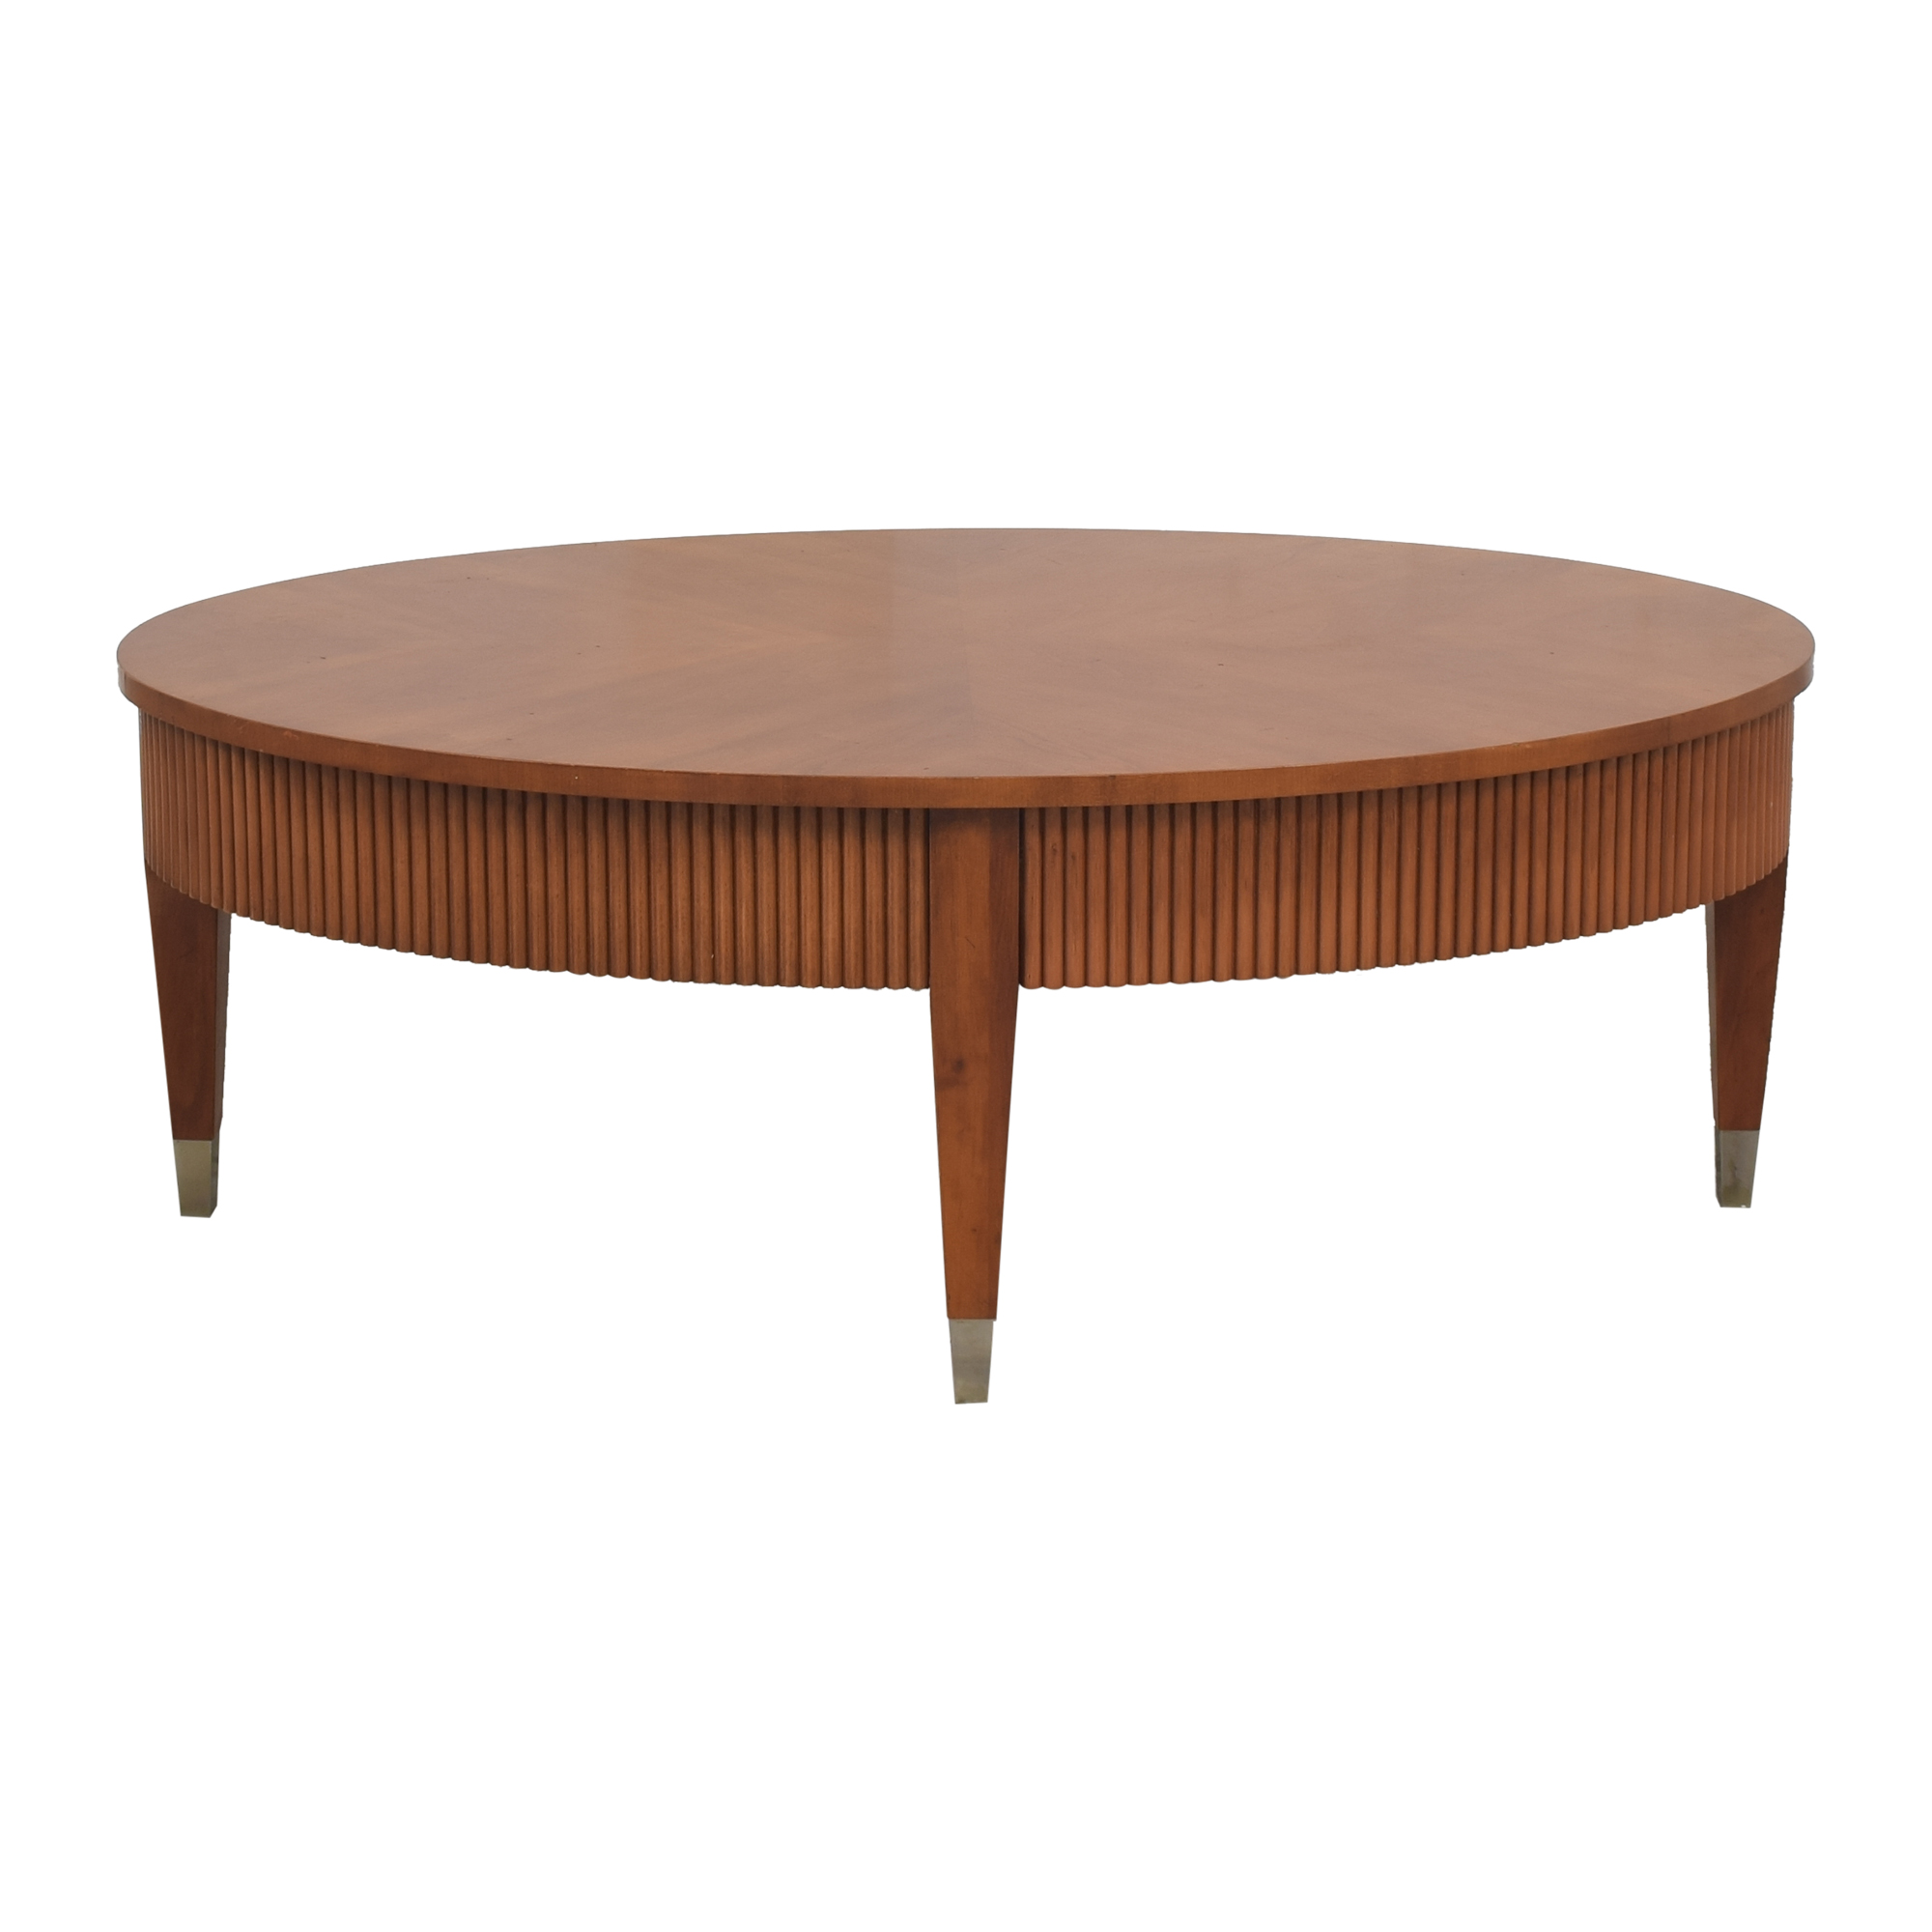 Ethan Allen Ethan Allen Avenue Oval Coffee Table nyc